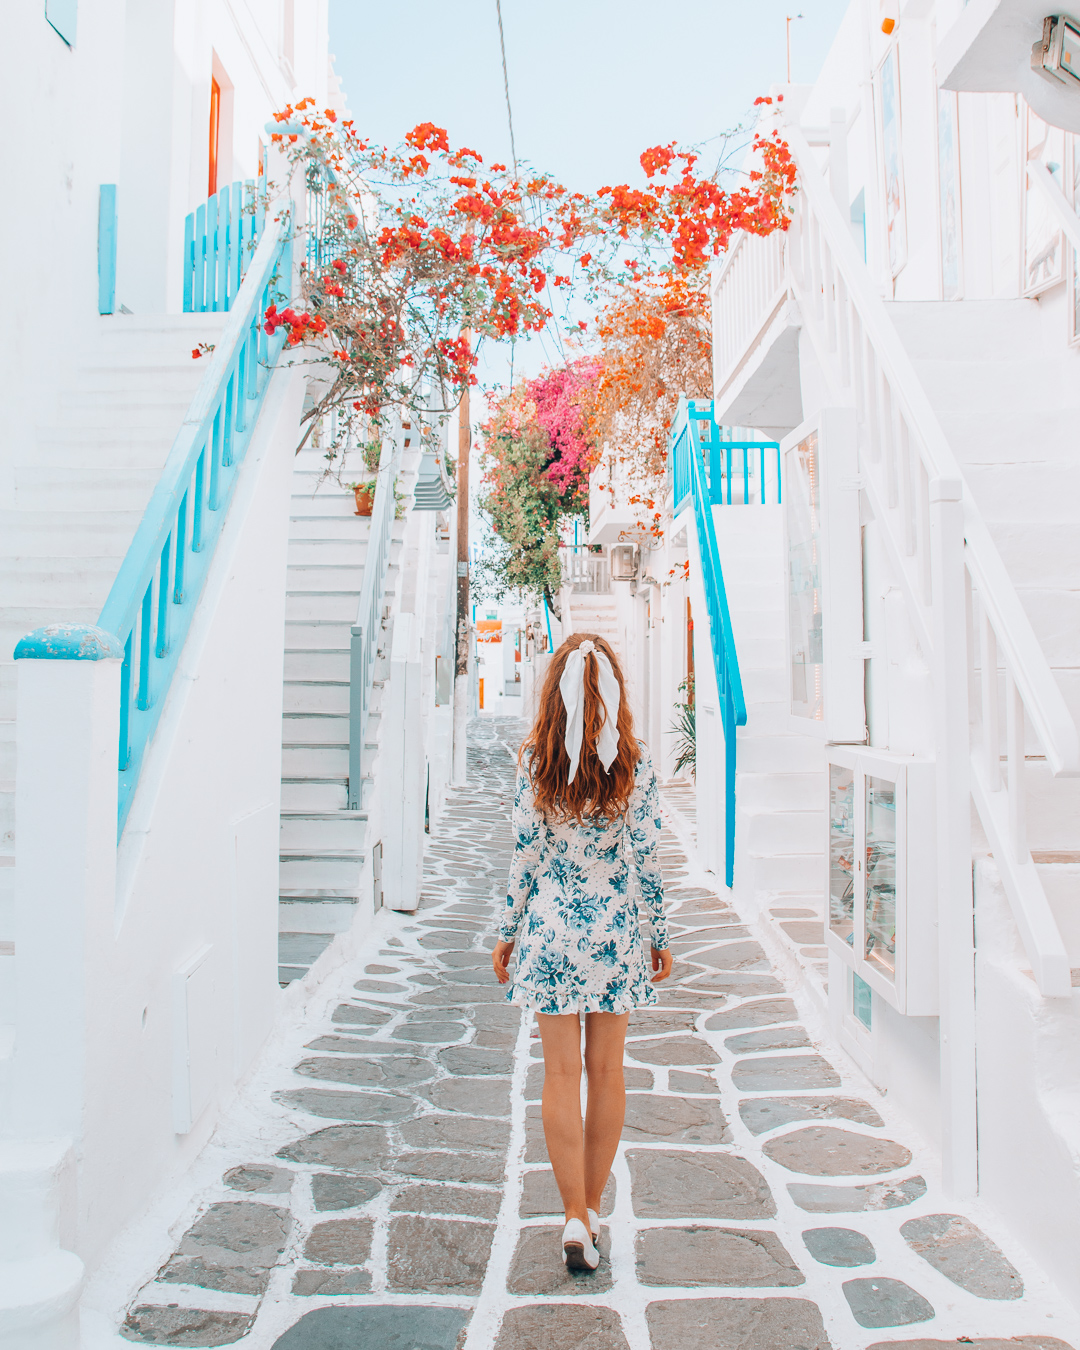 Girl walking in a street in Mykonos with cobblestones and flowers